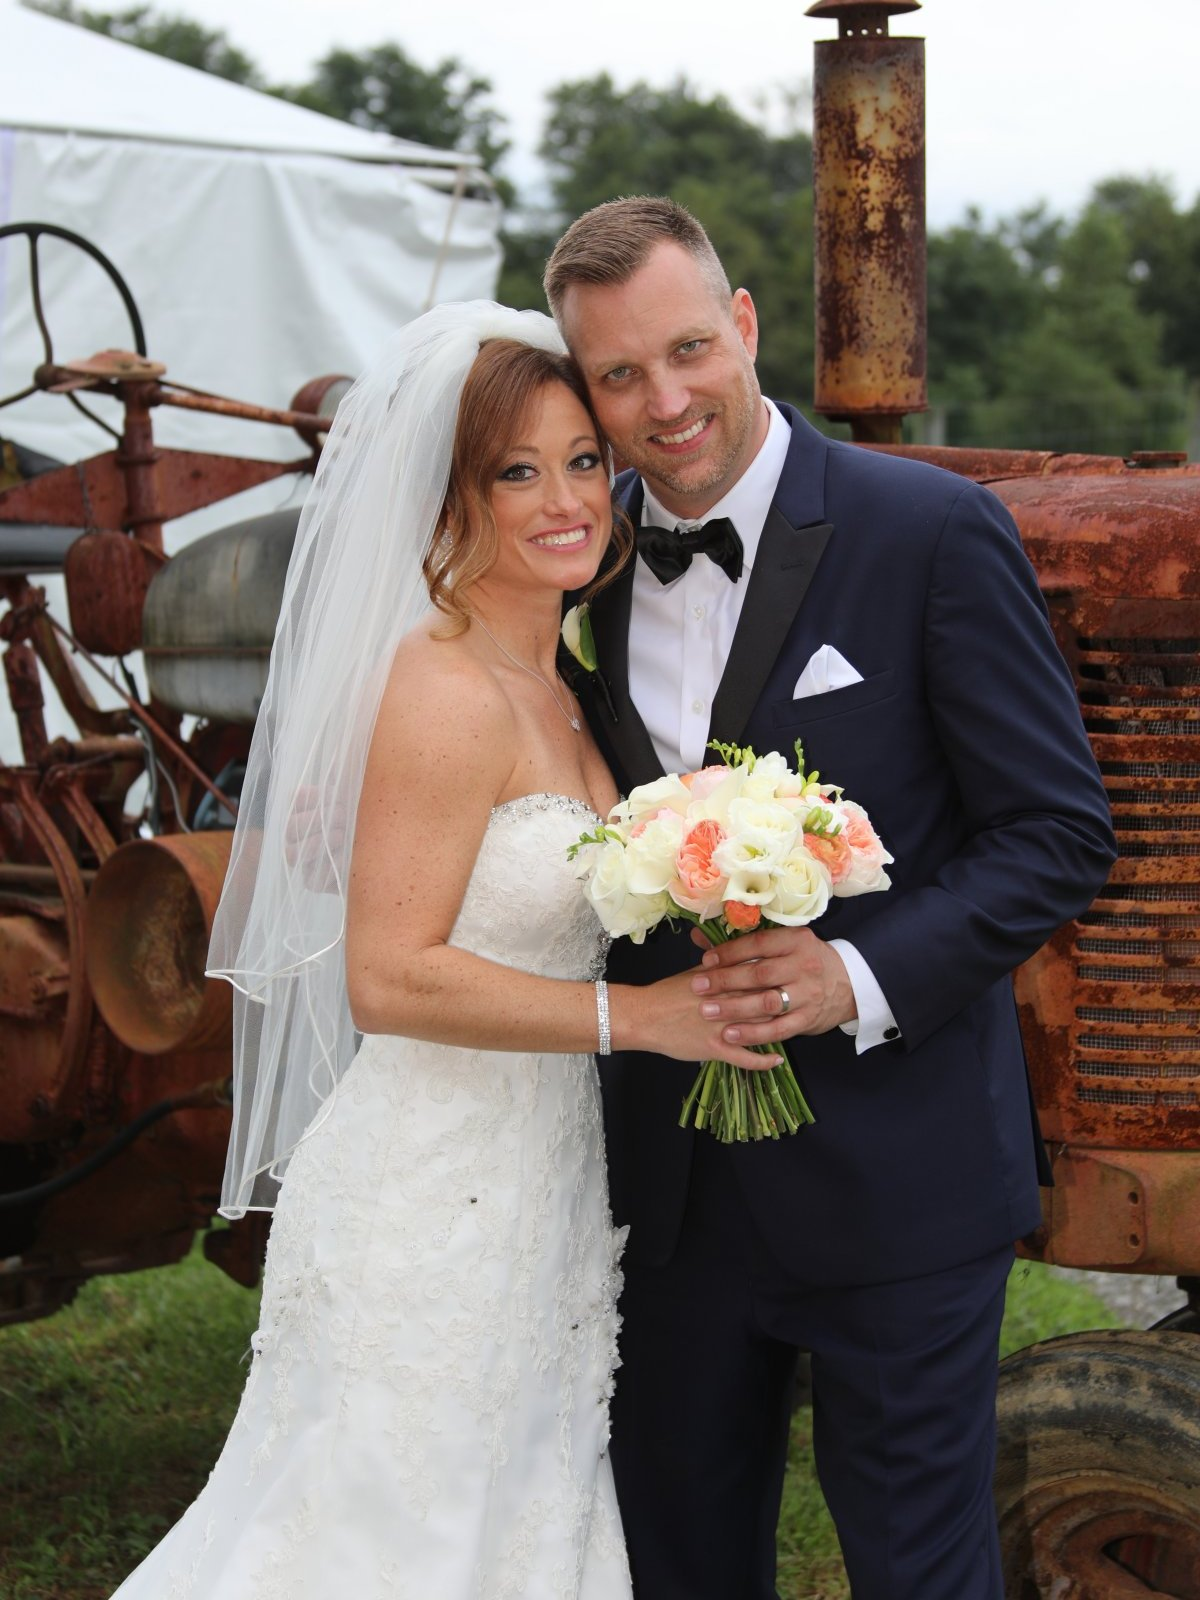 Married at First Sight Season 8 Couples: Meet the